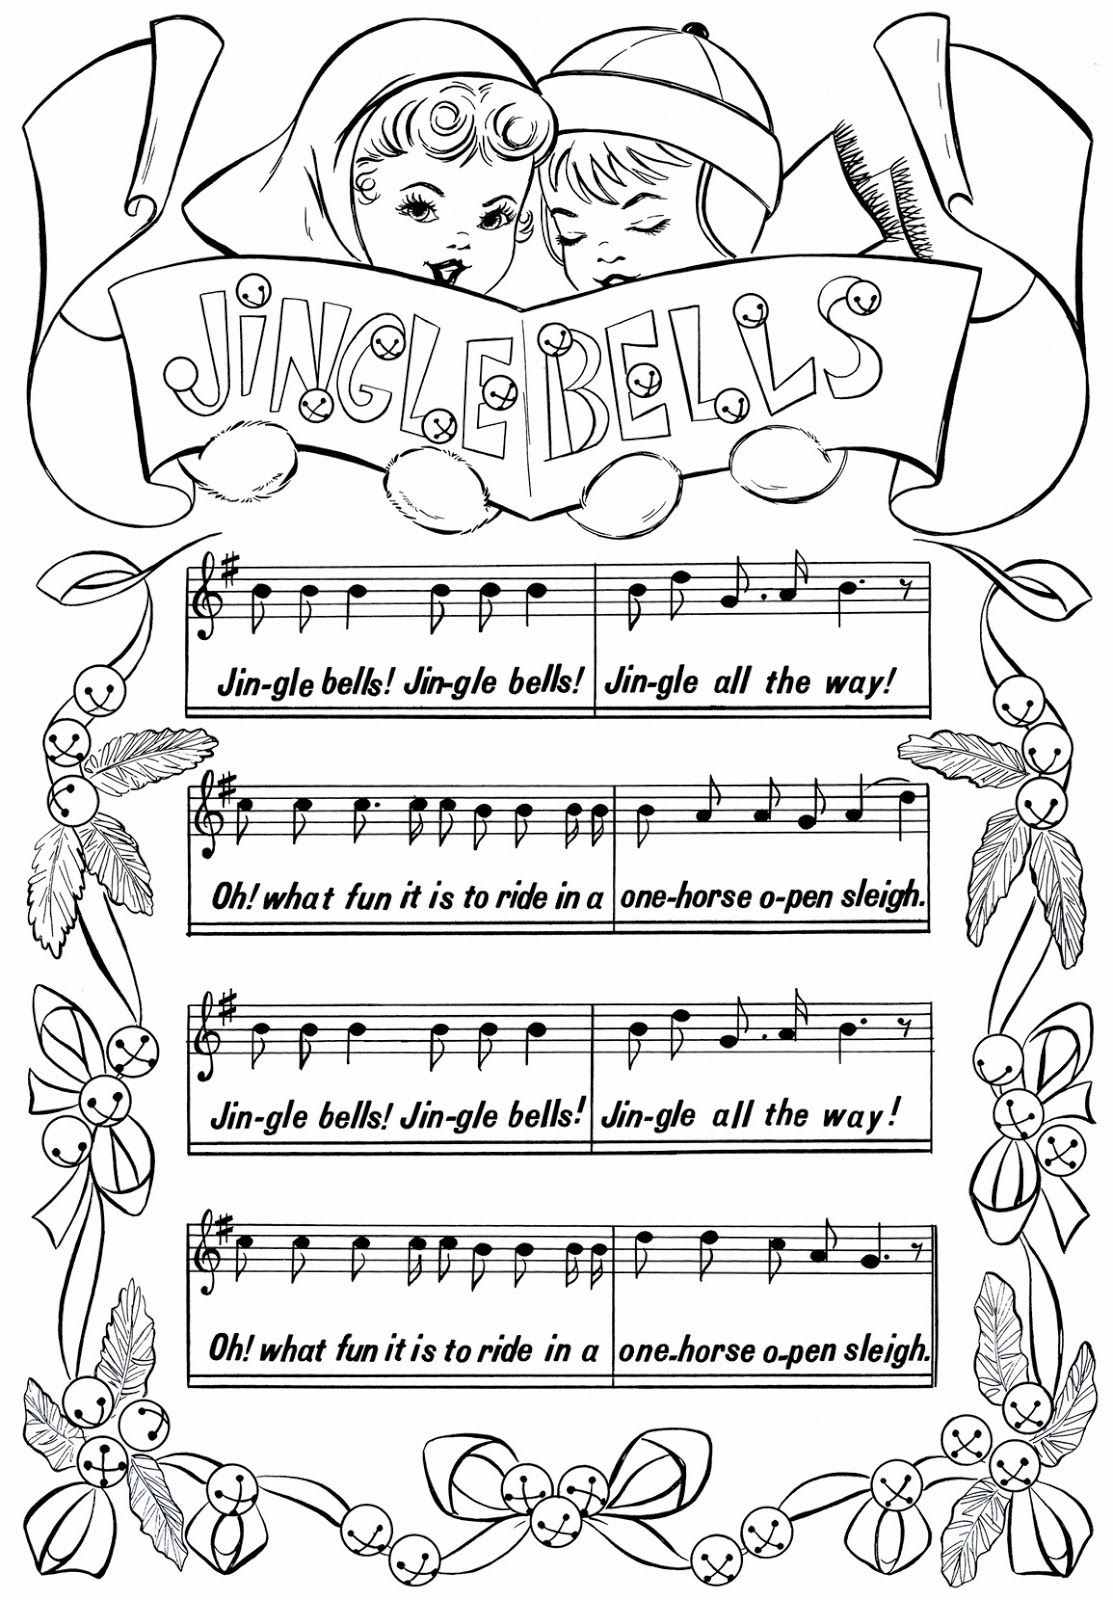 Free Printable Jingle Bells Sheet Music It is my opinion